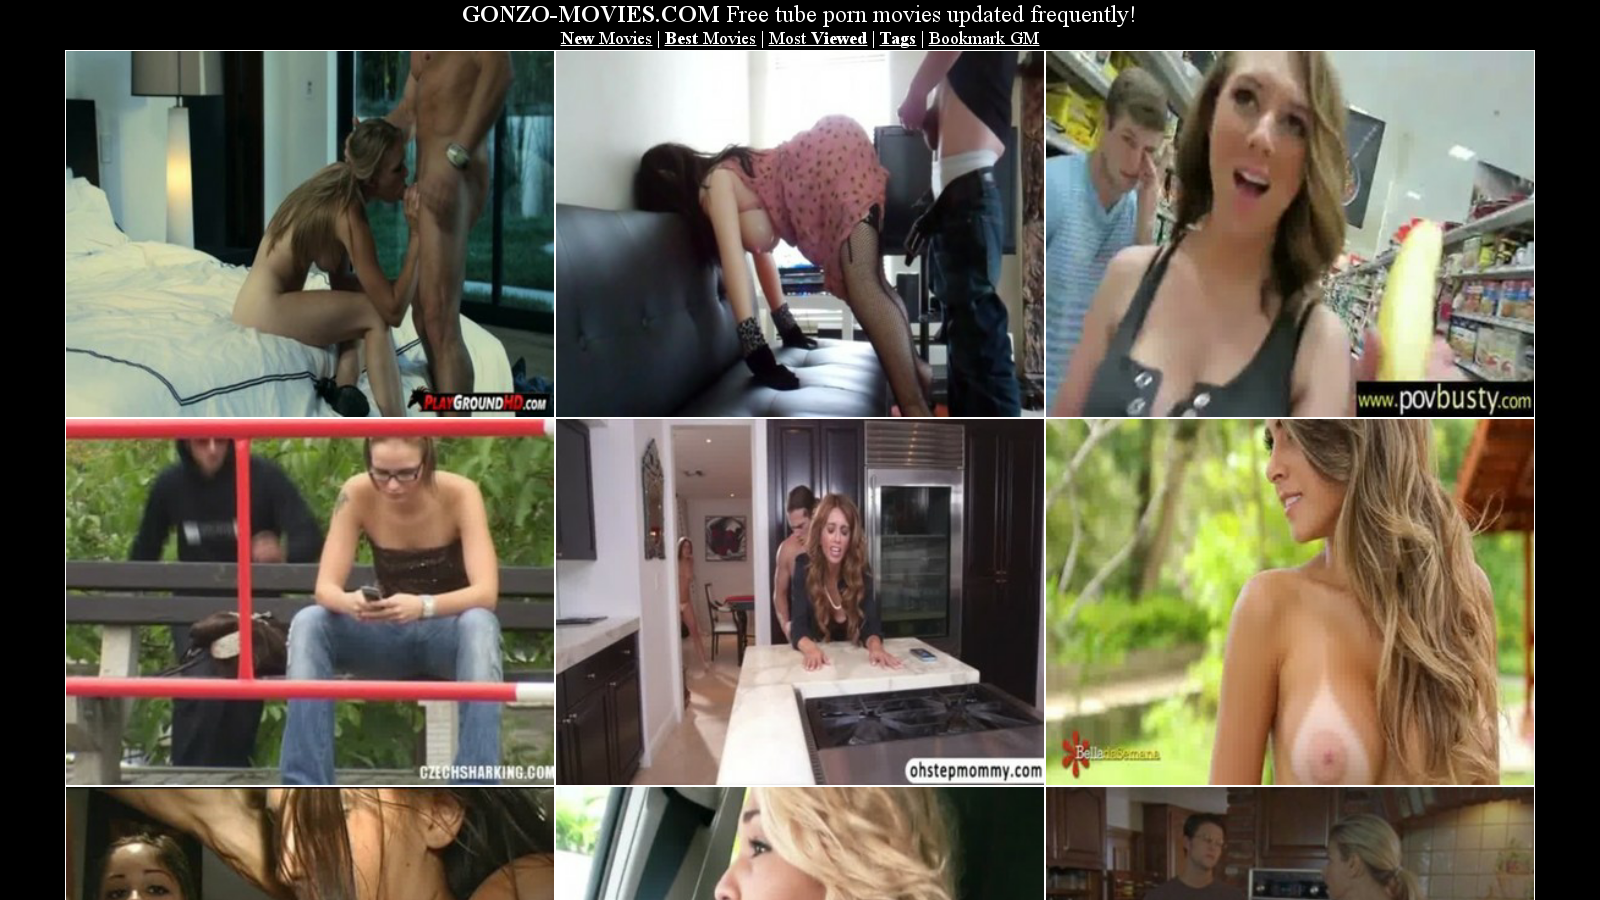 Gonzo Porn Movie - Hot Model Fukers-5974